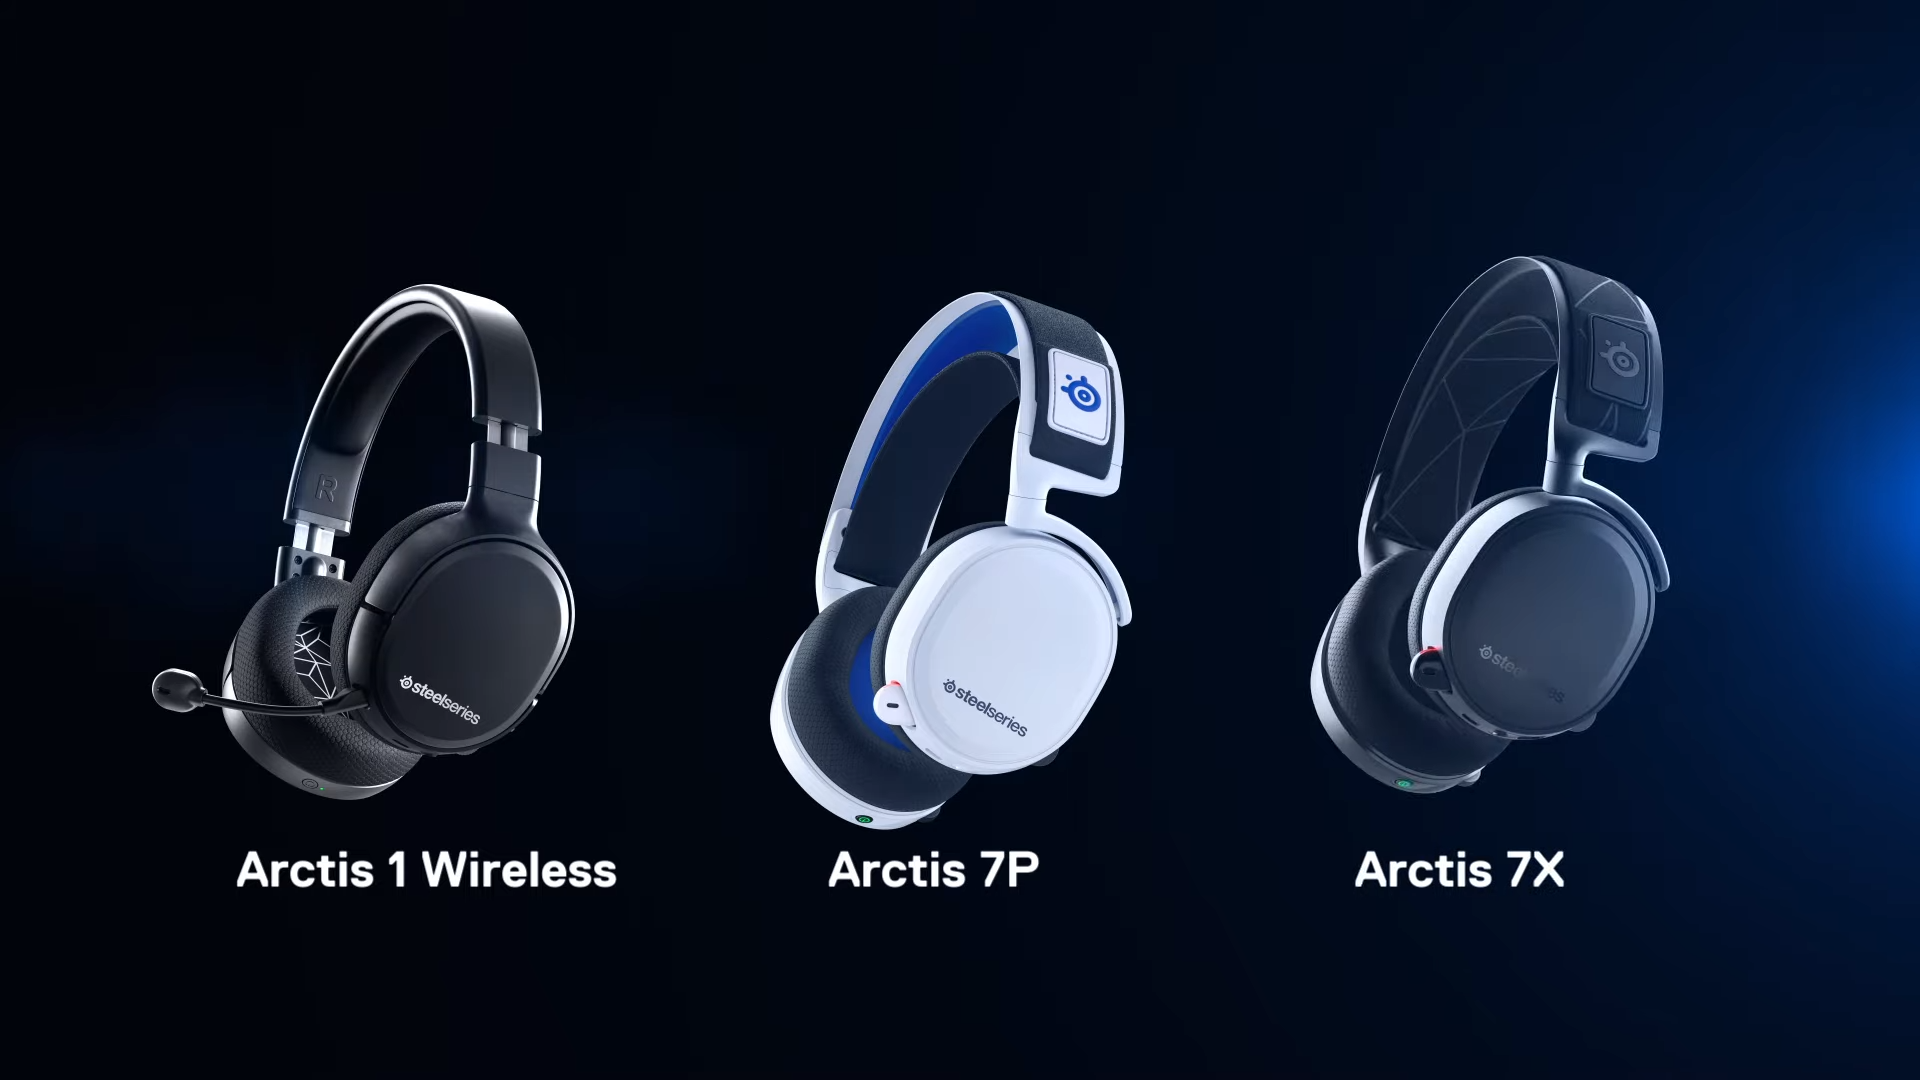 A selection of Arctis 1 Wireless, Arctis 7P, and Arctis 7X headsets.